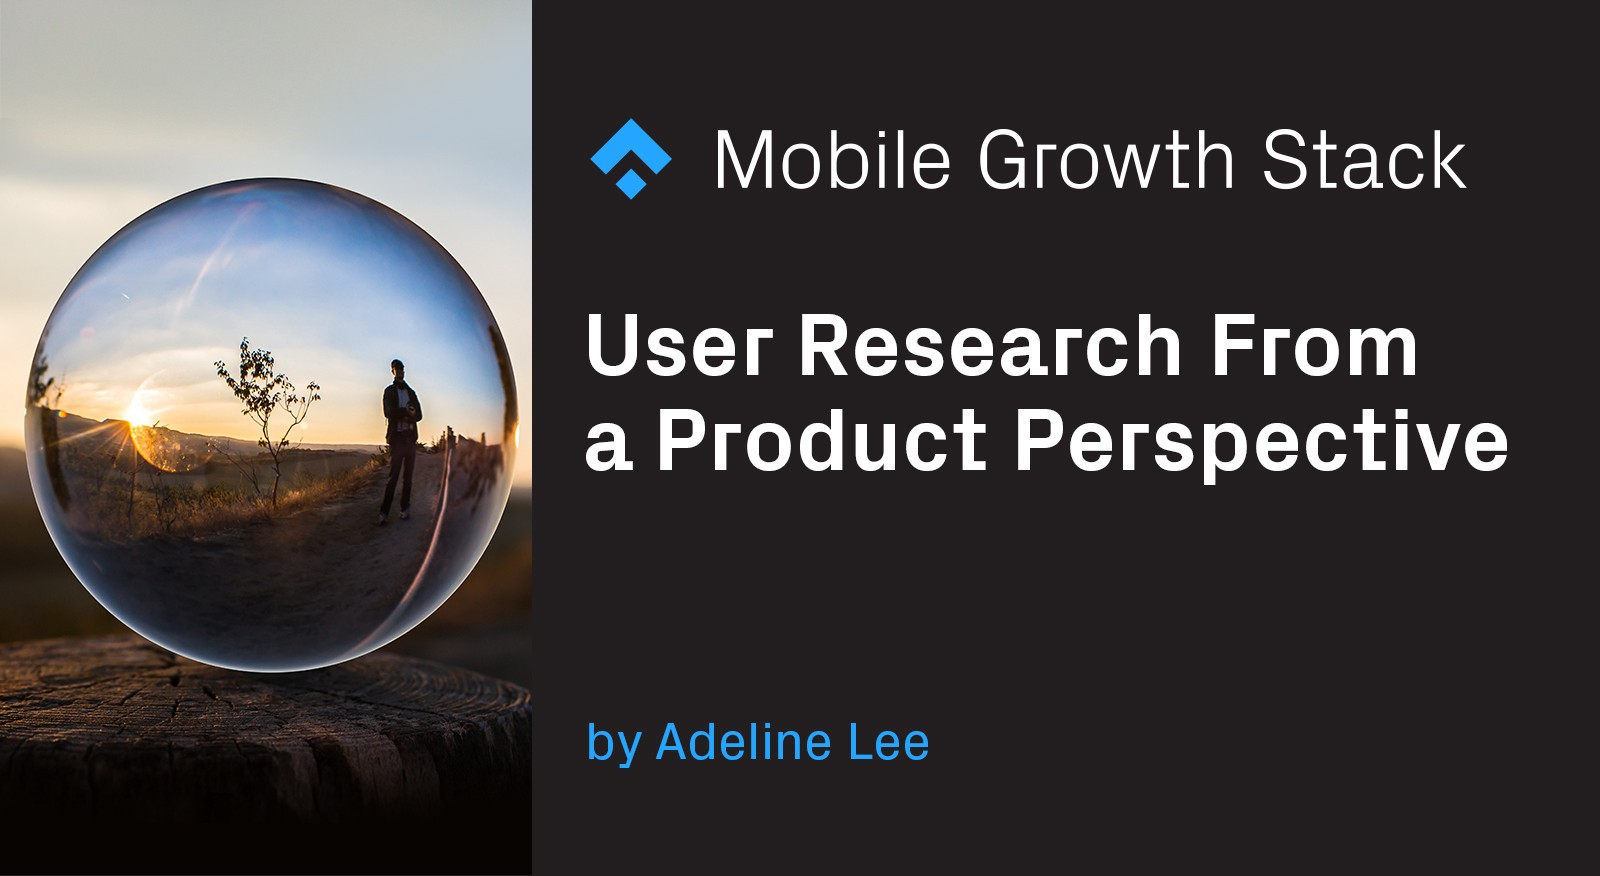 fa3edccdfa1e3 With all the wealth of information available from analytics and other  sources — why do apps need user research?